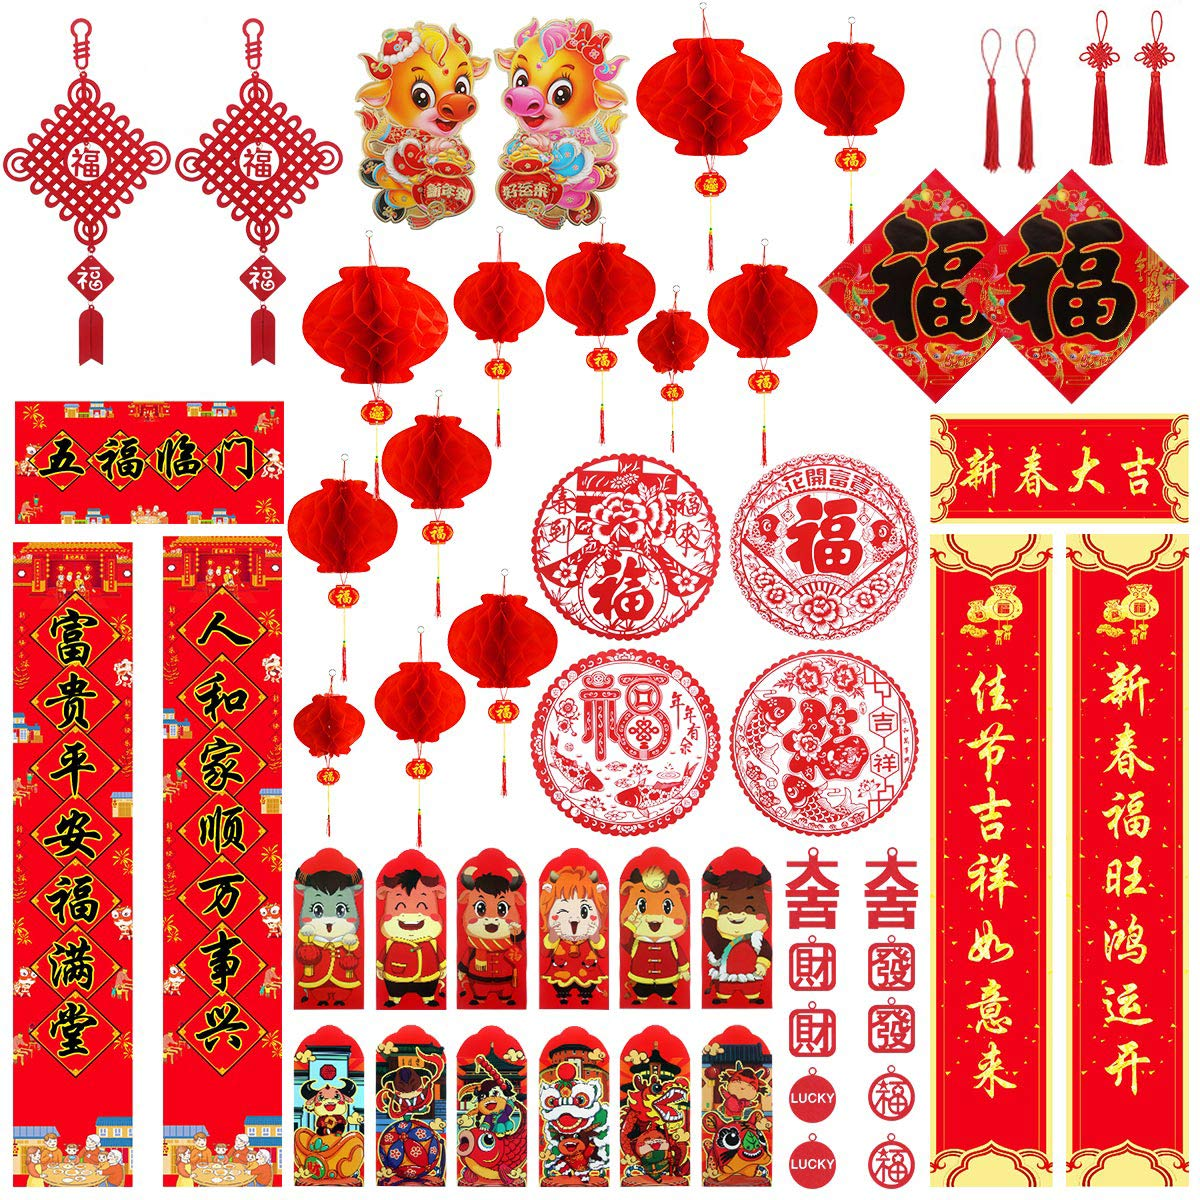 58PCS Chinese New Year Decoration, Chinese Couplets Chunlian Paper Red Lantern Ox Red Envelopes Hong Bao Chinese Fu Character Paper Window Ornaments Chinese Knots for Ox Spring Festival Party Decor